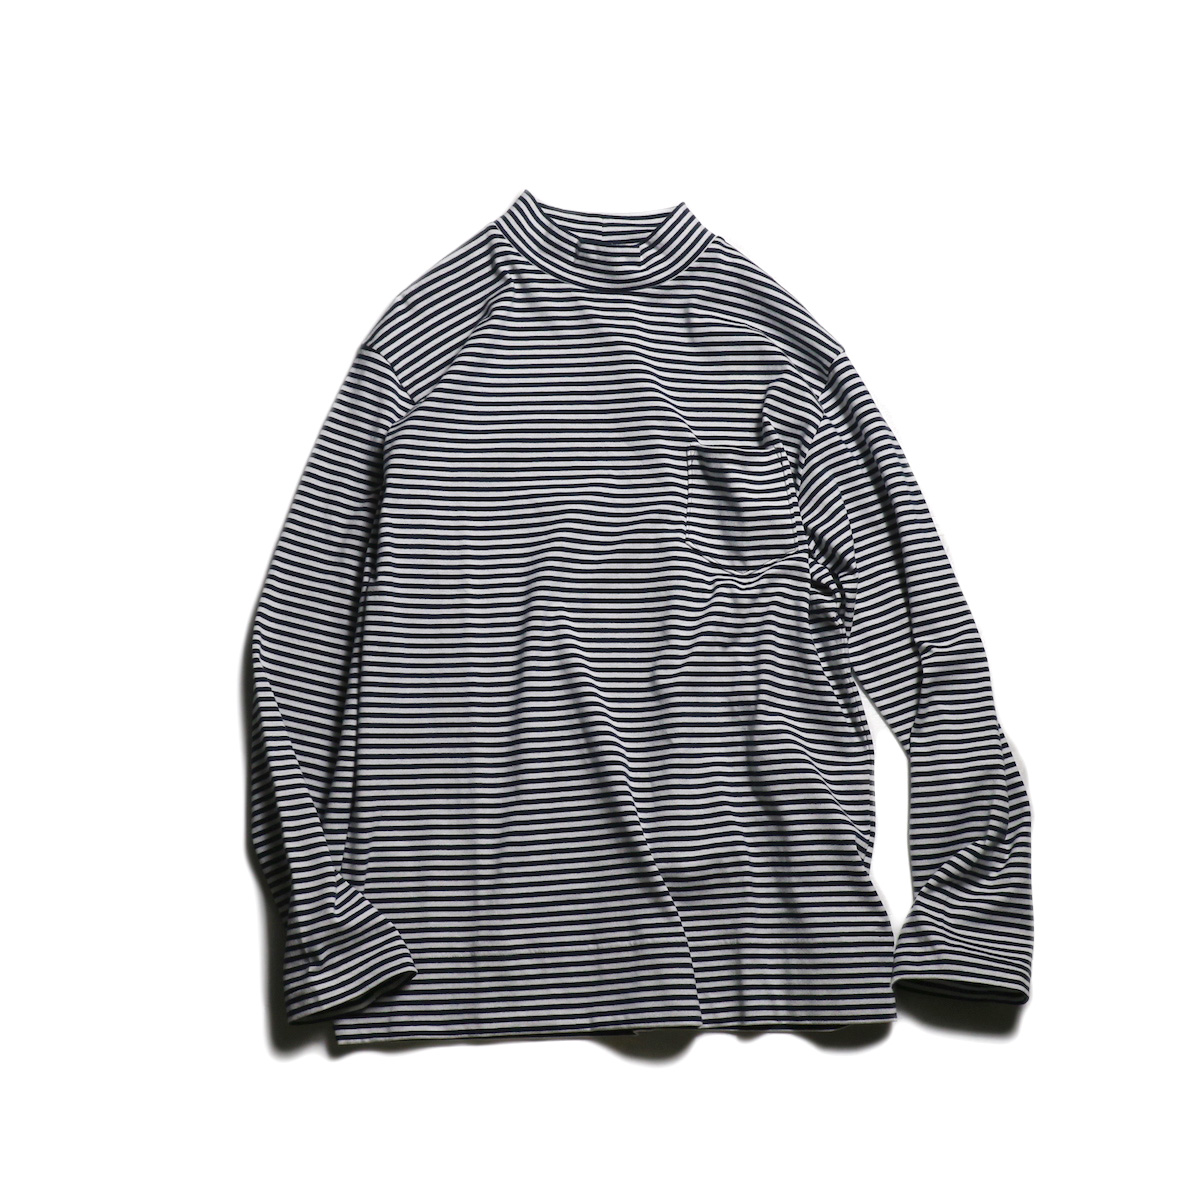 TOWN CRAFT / seattle border h-neck tee (Navy)